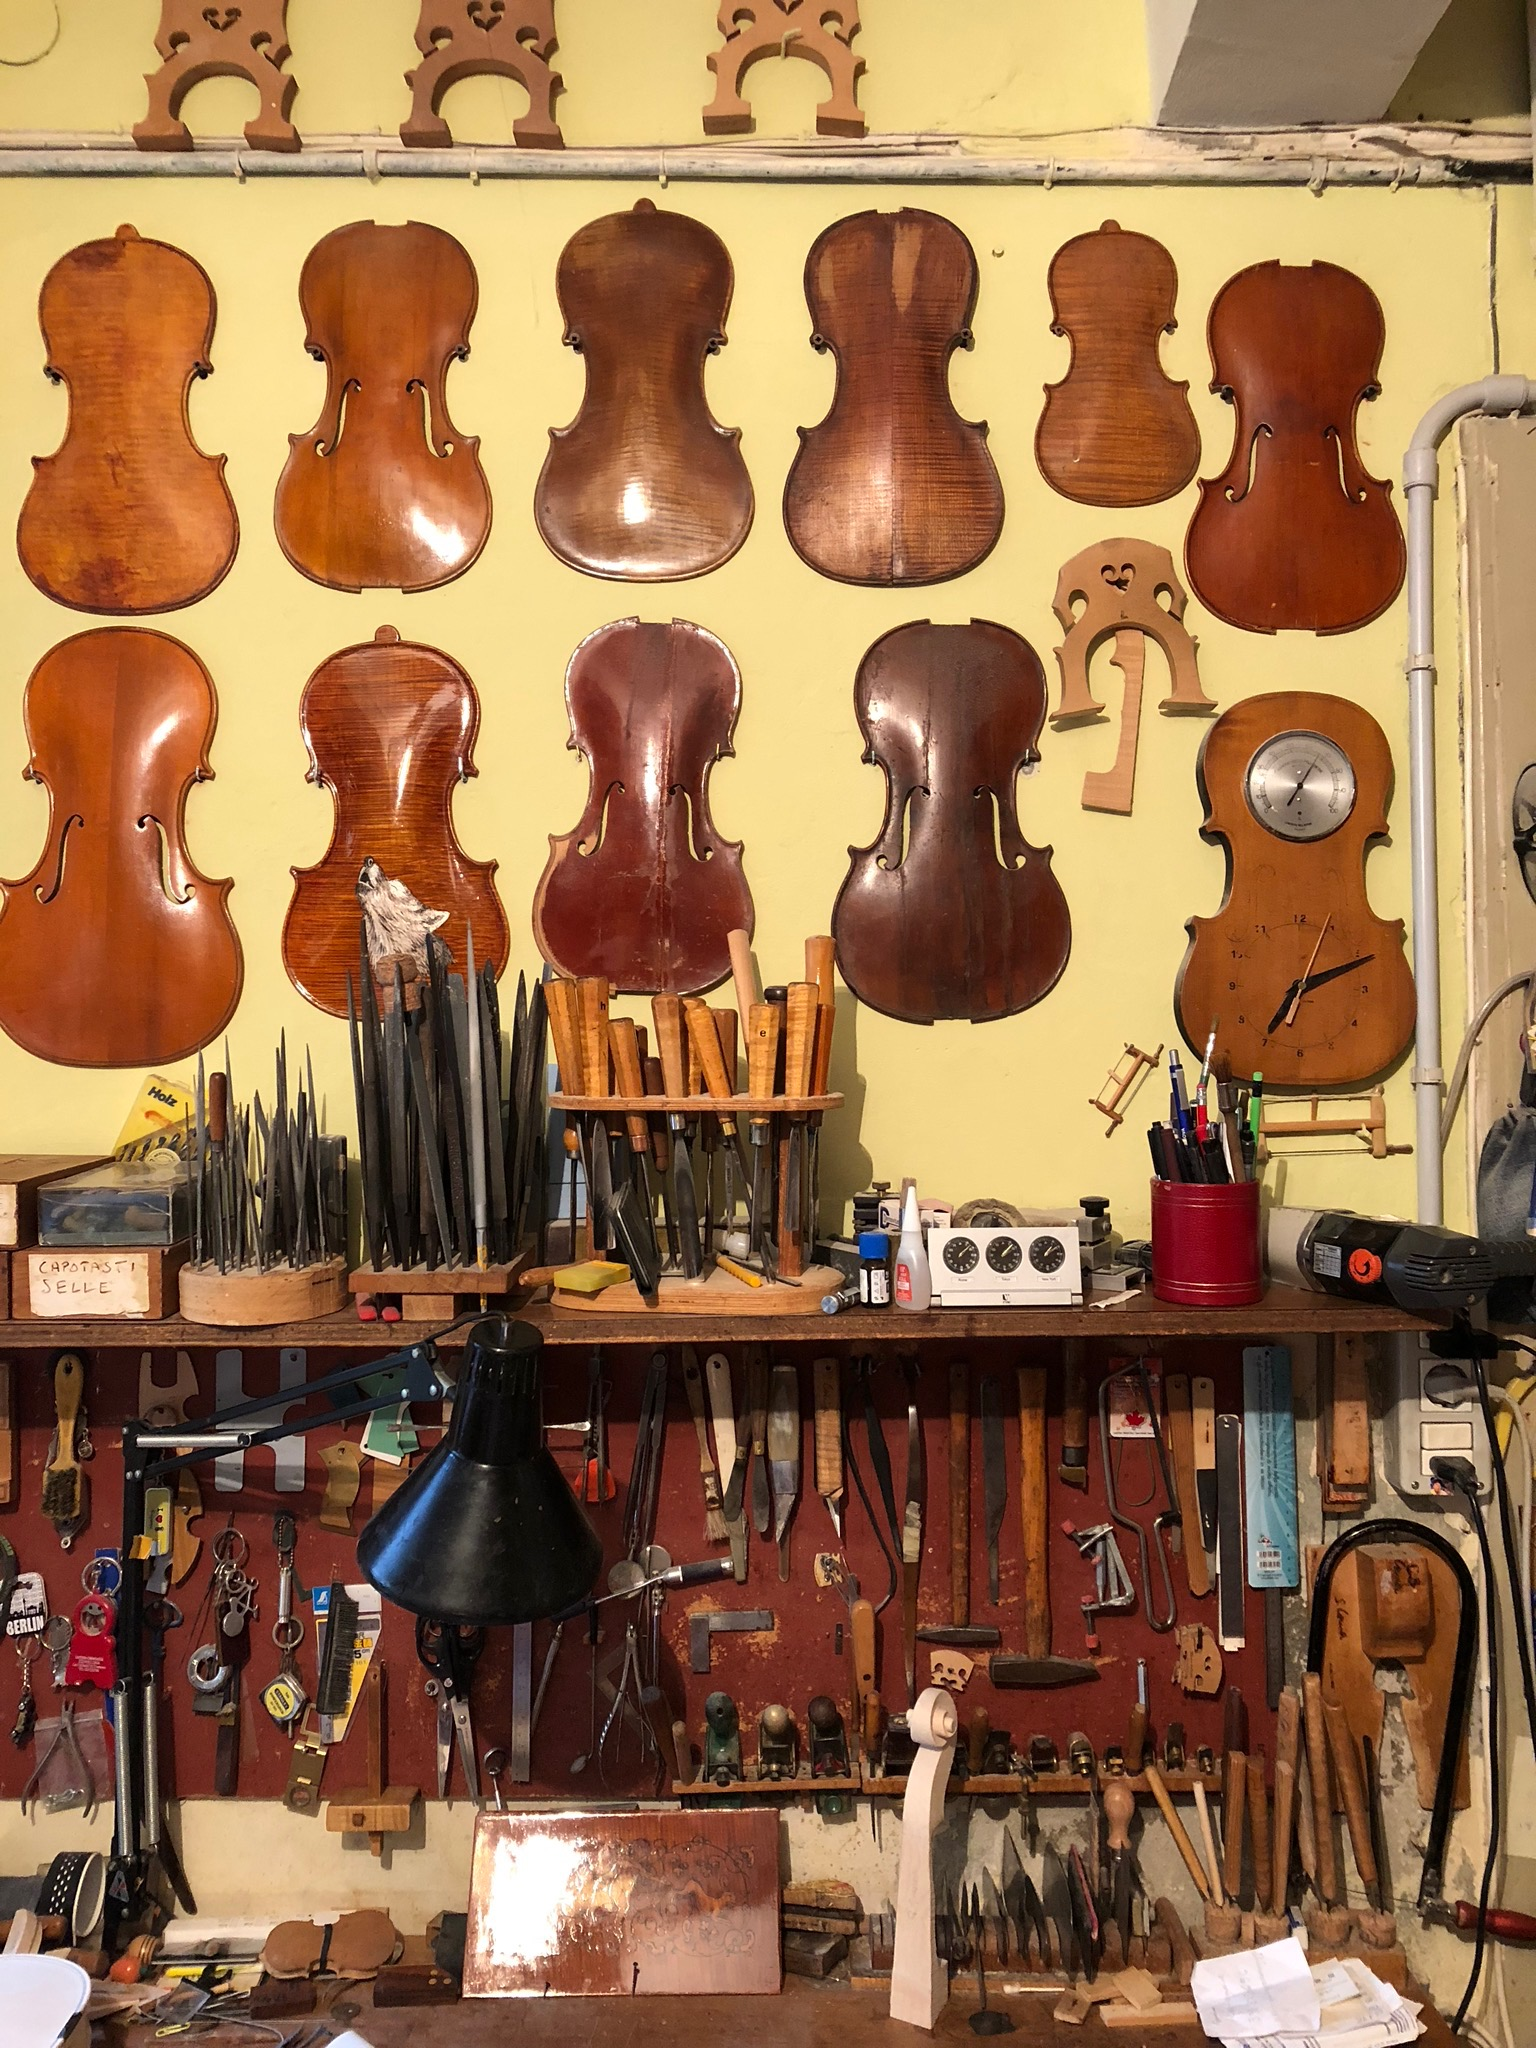 The modern version of the violin was born here in the 16th century and we saw them made in this workshop! We loved our personal tour of this tiny father/son operation.